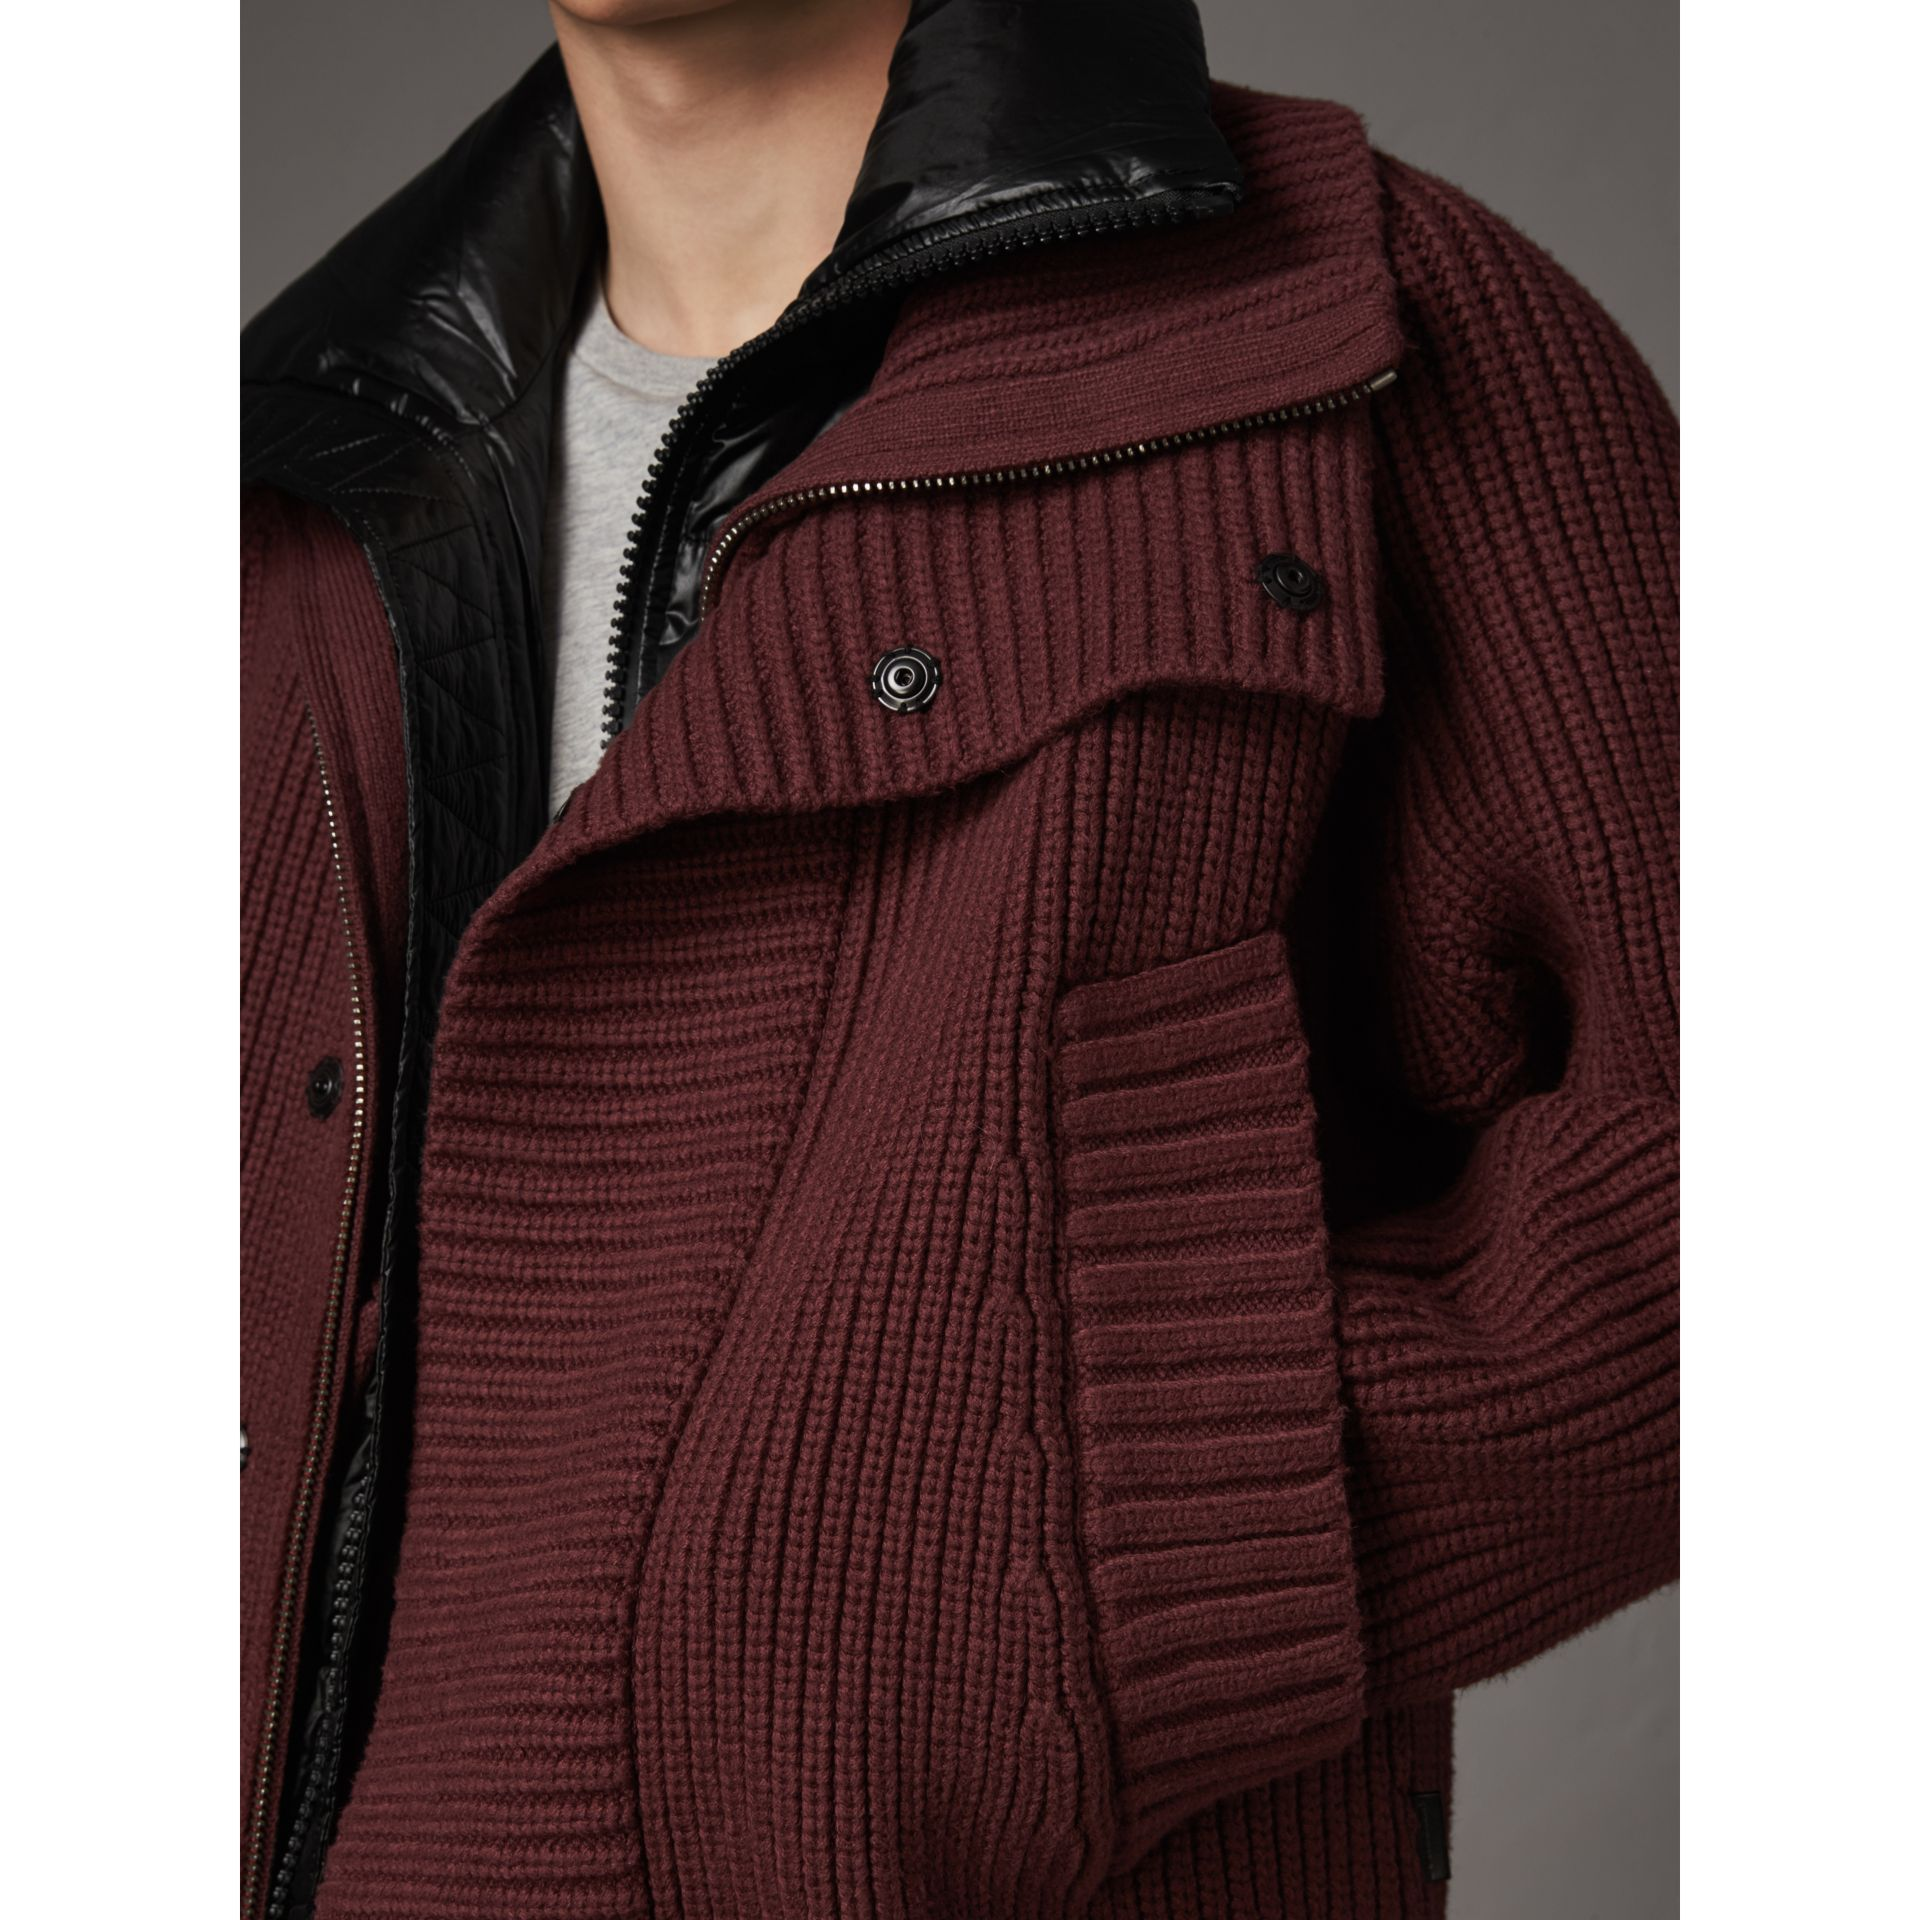 Rib Knit Cotton Blend Jacket with Down-filled Gilet in Mahogany Red - Men | Burberry - gallery image 1